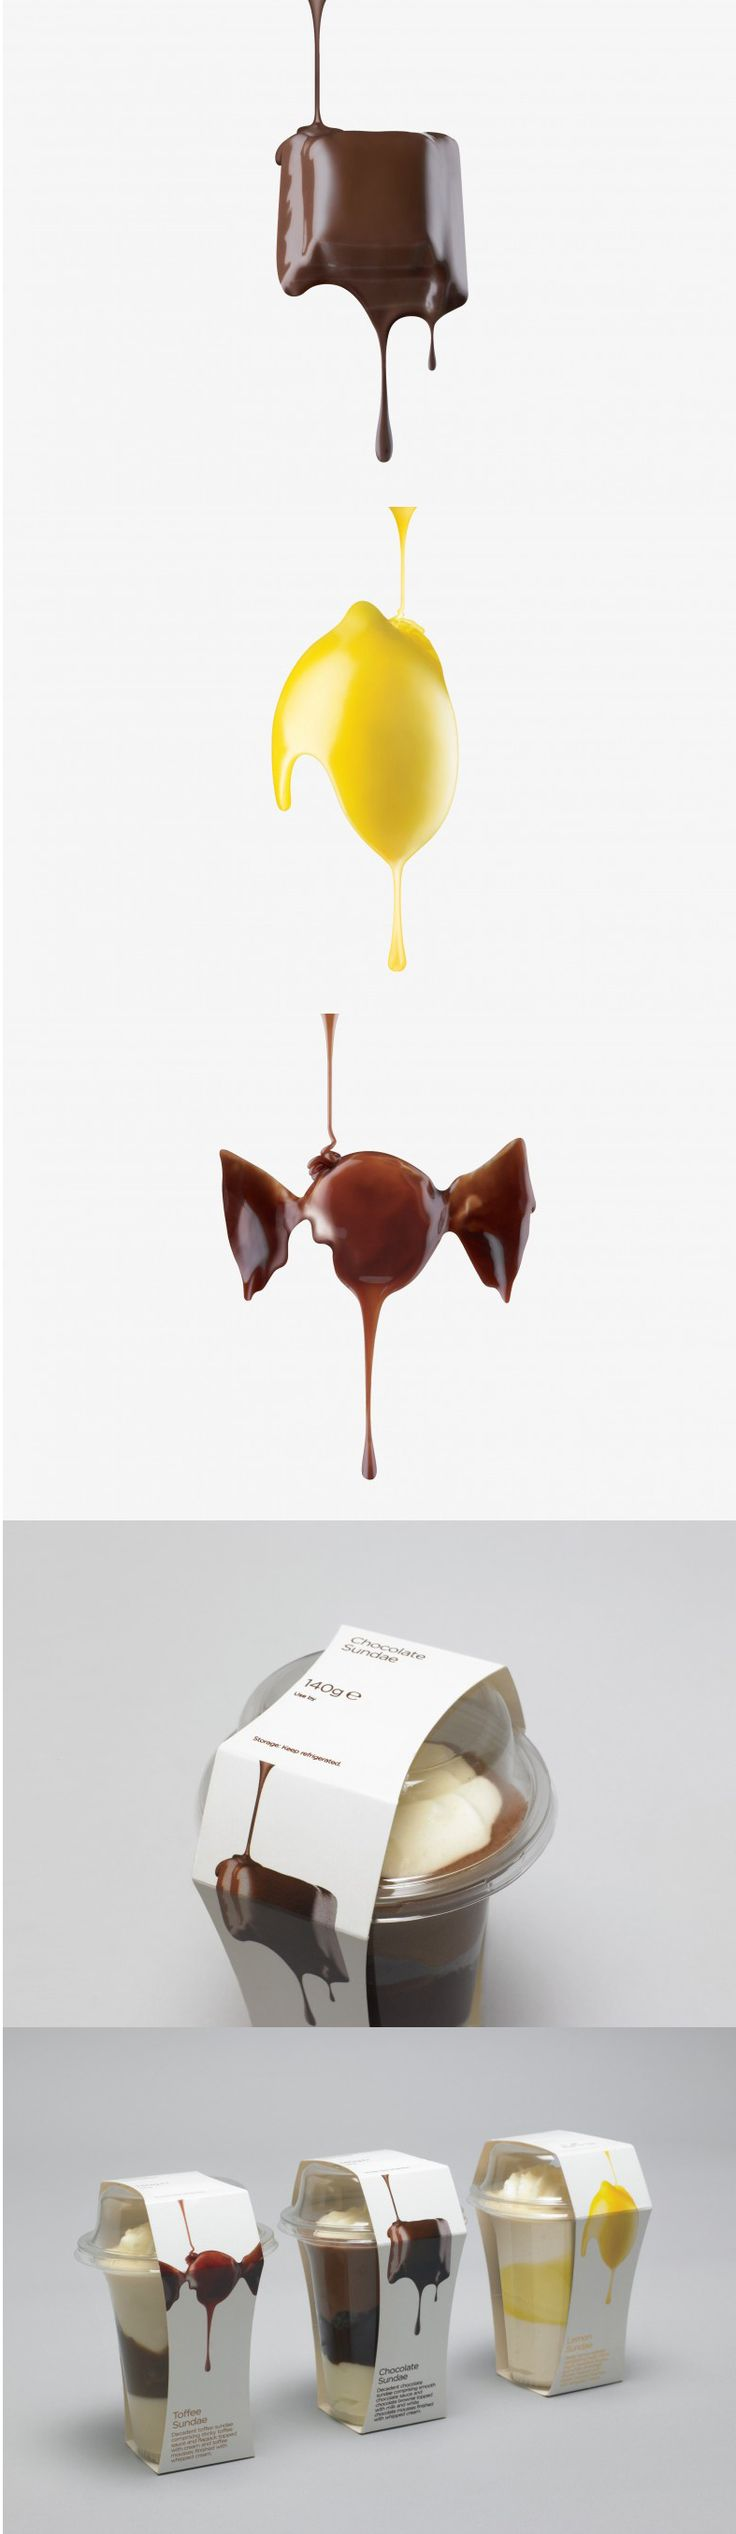 pinned this for the bottom bit... sleeves around the paper the ice cream goes in. an interesting idea for having the brand, the ingredients, etc all on one thing. inspiration for future packaging possibilities, not sure about the brand stuff. like it, though.